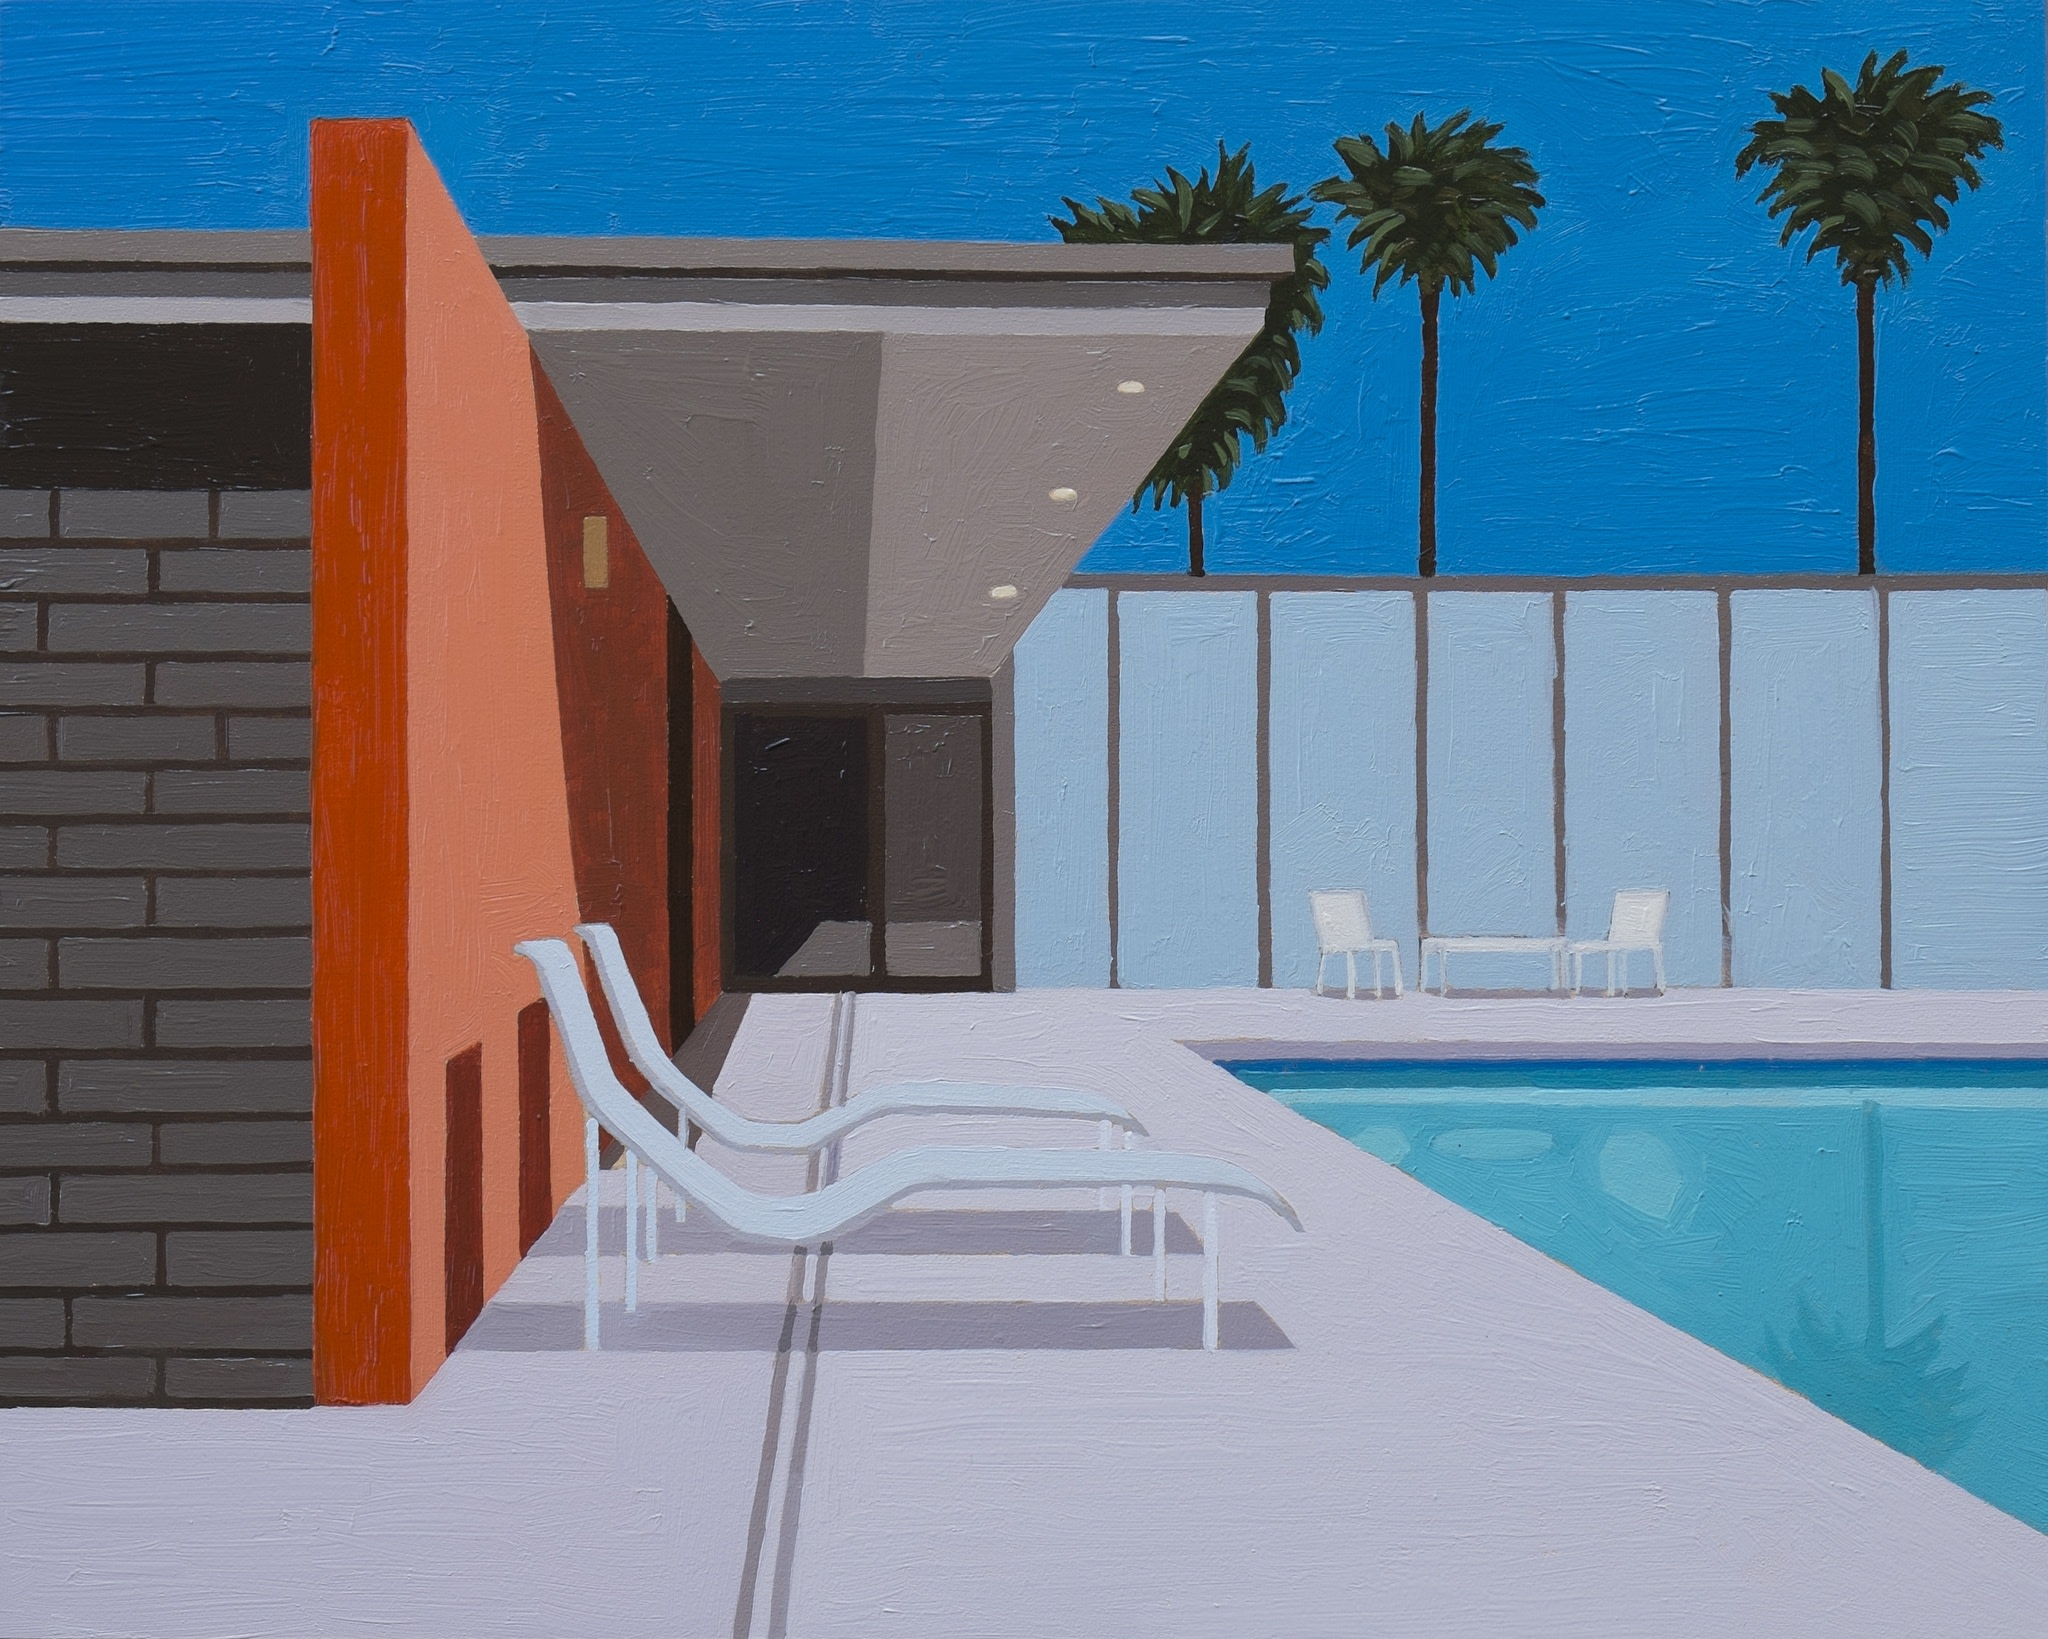 """<span class=""""link fancybox-details-link""""><a href=""""/exhibitions/34/works/artworks527/"""">View Detail Page</a></span><div class=""""artist""""><strong>Andy Burgess</strong></div><div class=""""title""""><em>California Living</em>, 2016</div><div class=""""medium"""">Oil on Panel</div><div class=""""dimensions"""">20.3 x 25.4 cm<br>8 x 10 in.</div>"""